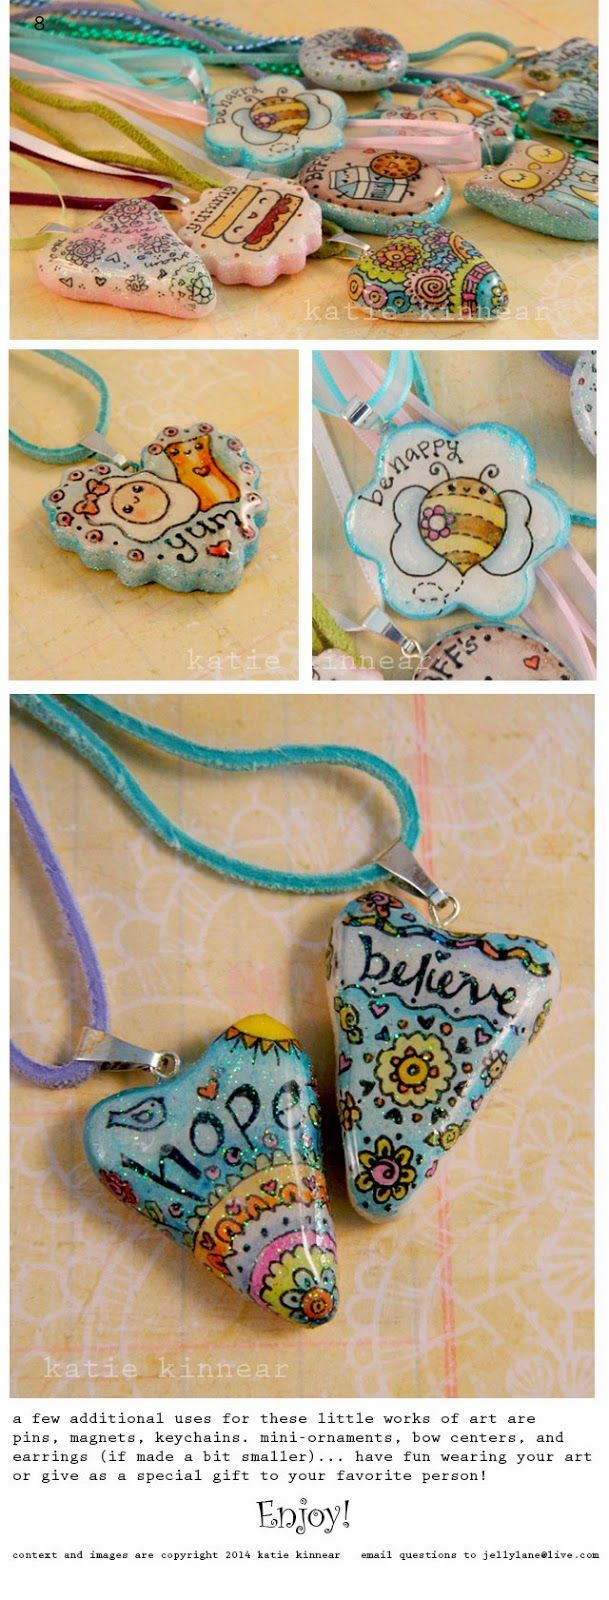 Here is a fun DIY for you that has been inspired by the art of doodling. I started making these little pendants last summer when I was spend...